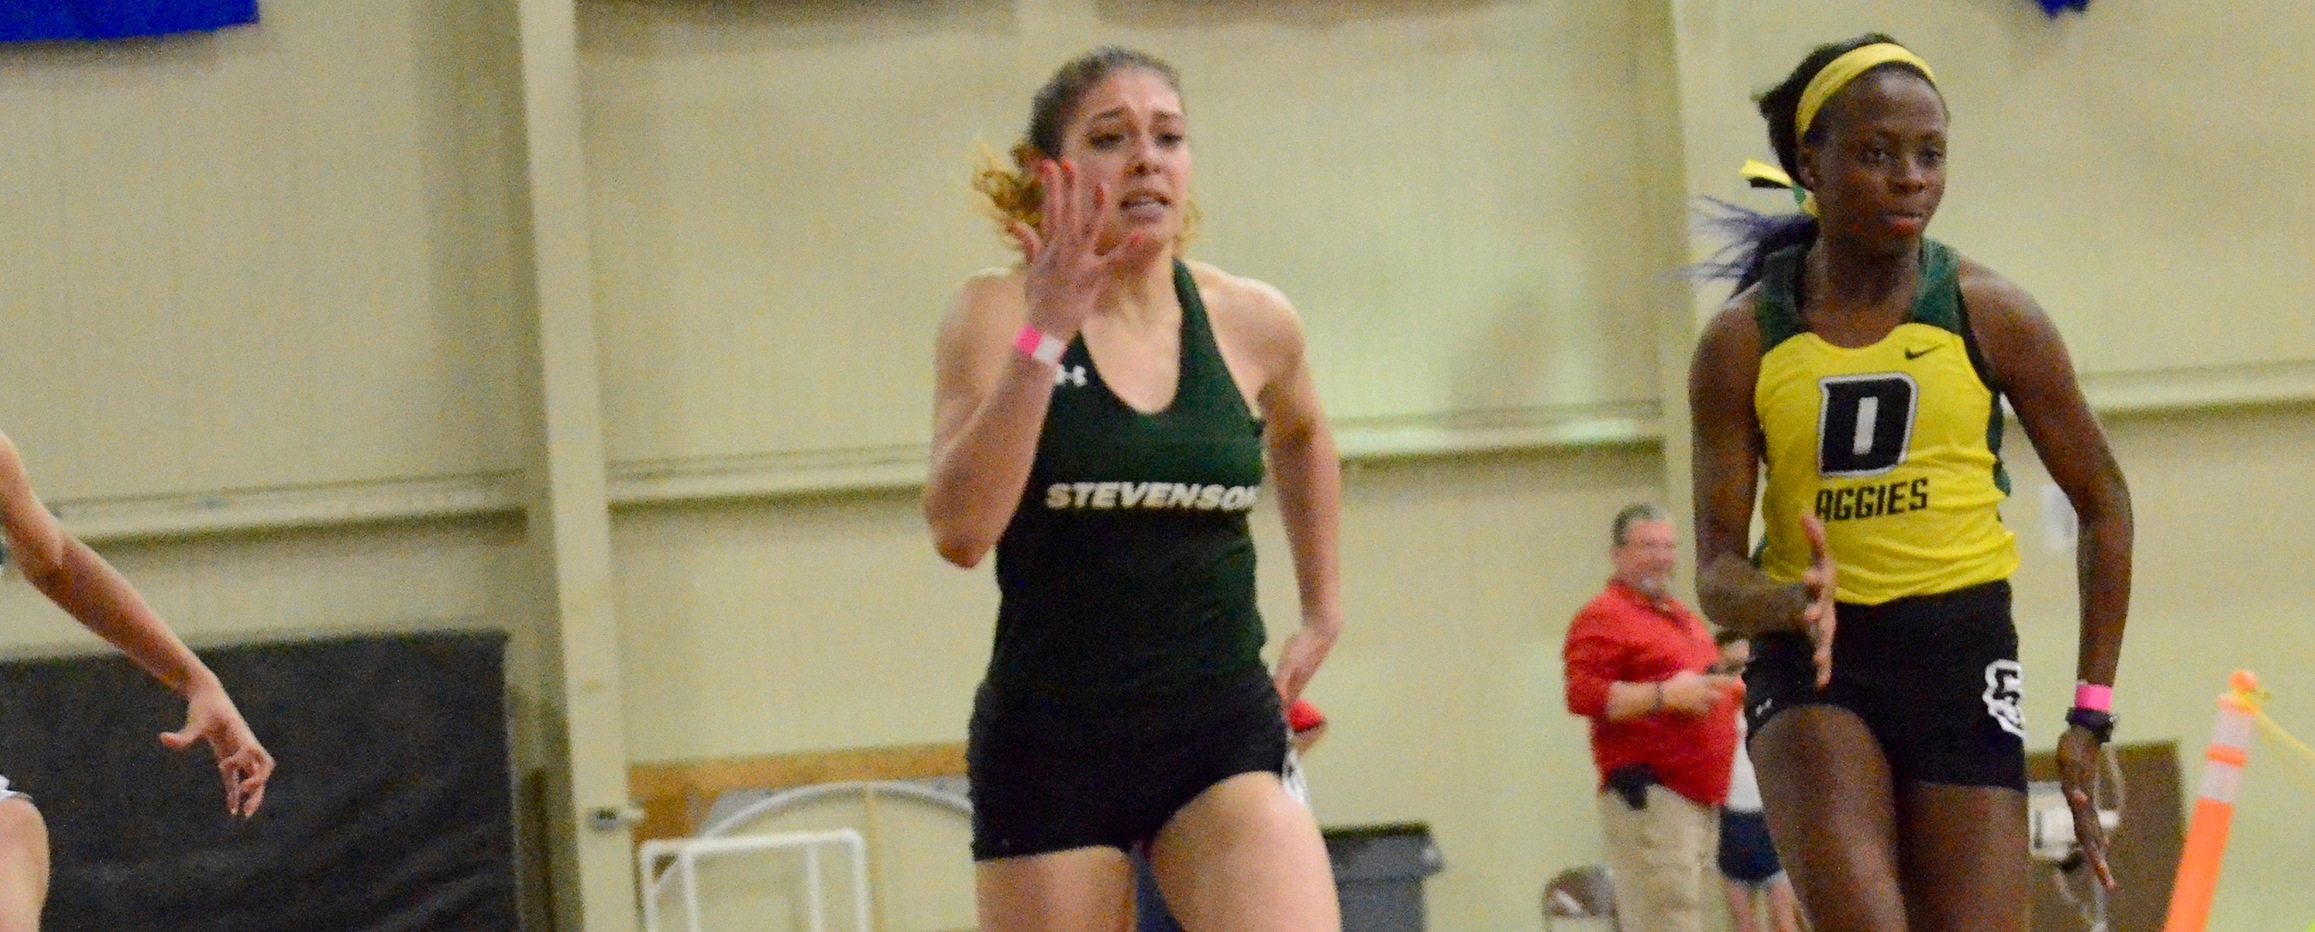 Bishop Wins Weight Throw, Mustangs Second After First Day of MAC Championships